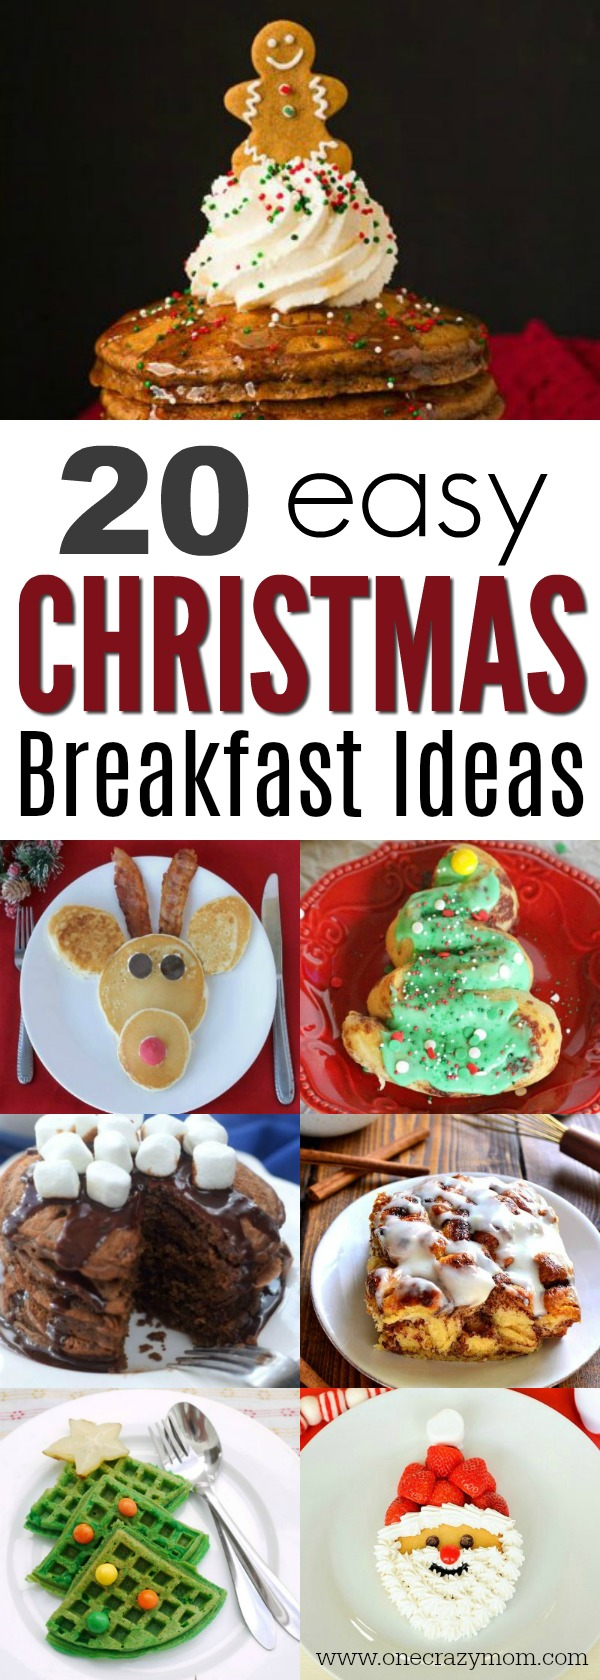 Make your Christmas breakfast menu special with these holiday breakfast ideas.20 Christmas breakfast recipes the family will love.Holiday breakfast recipes.